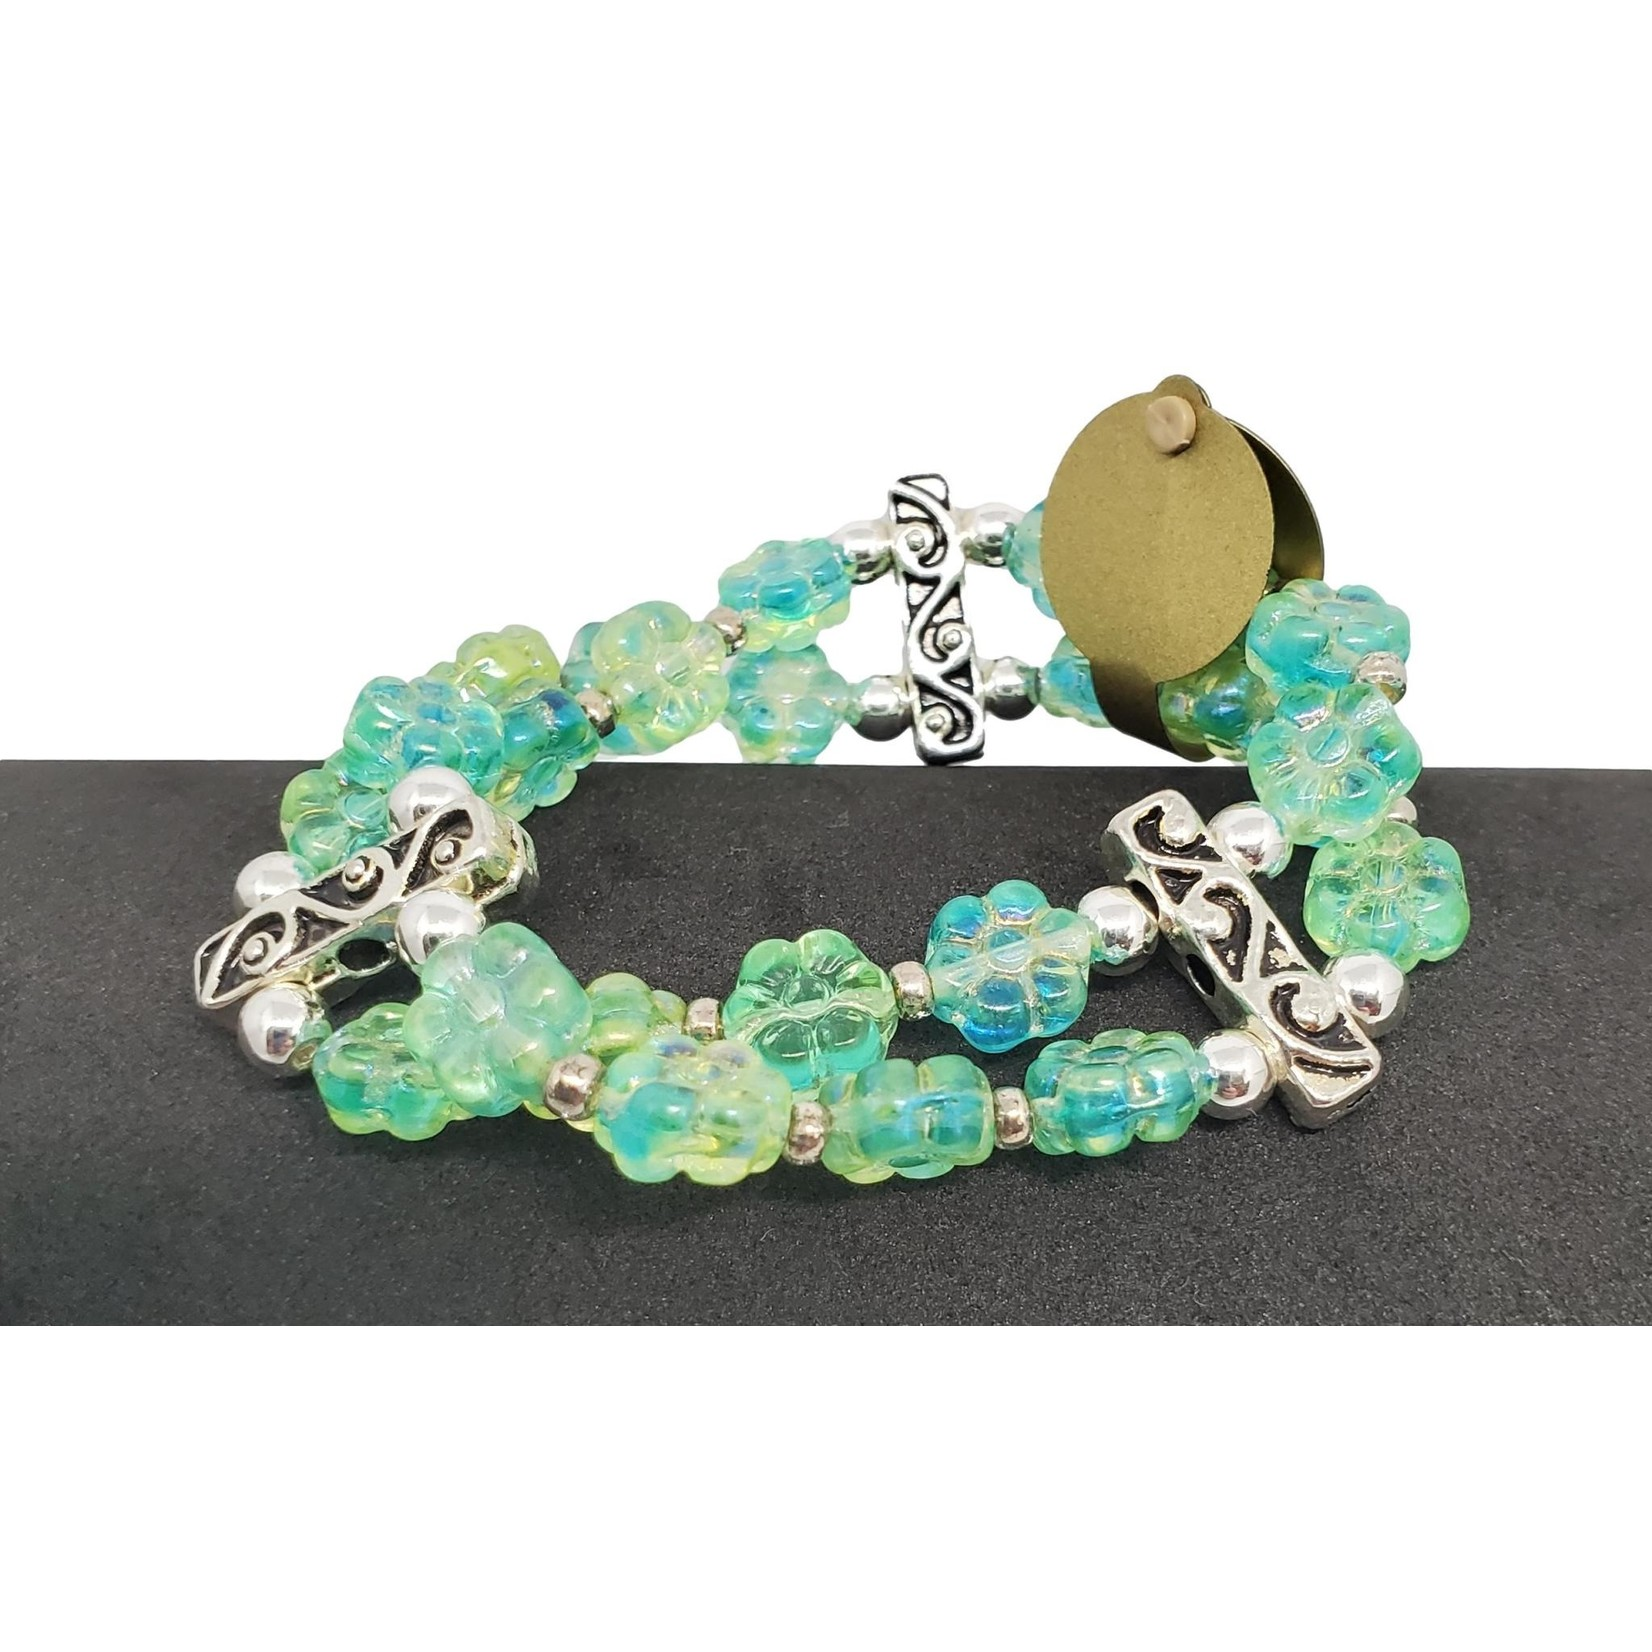 Jewellery by Deborah Young-Groves Double Row of Soft Green Floral Beads Bracelet